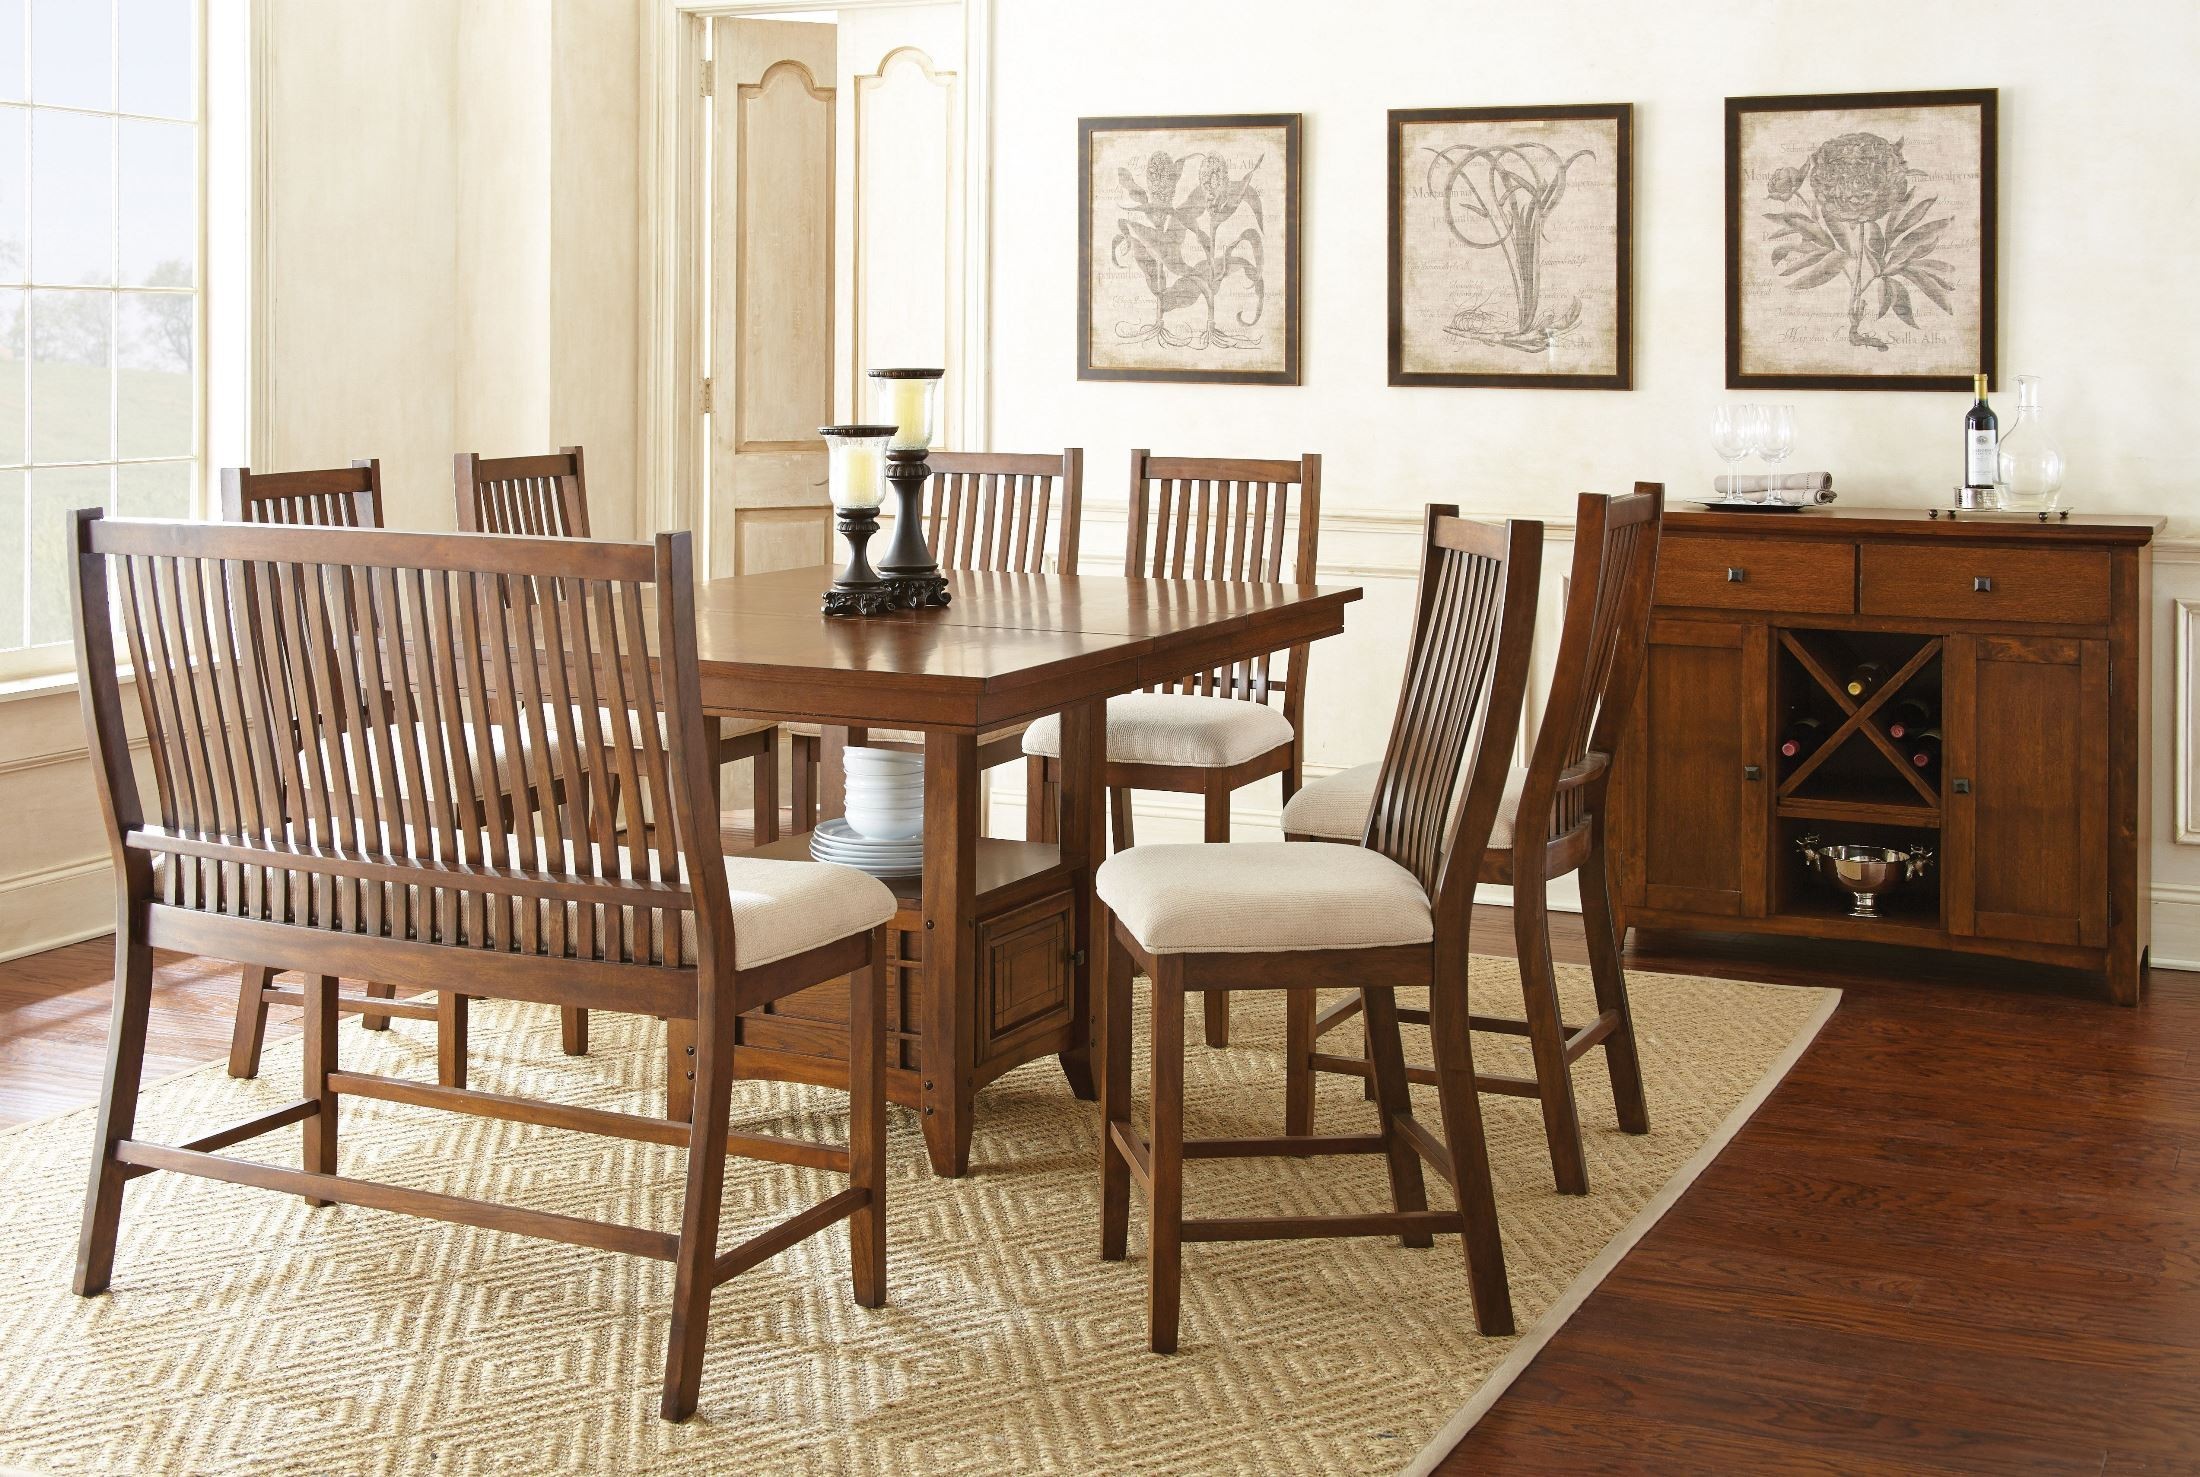 Kayan extendable counter height storage dining room set from steve silver ky550pb ky550pt - Dining room sets with storage ...